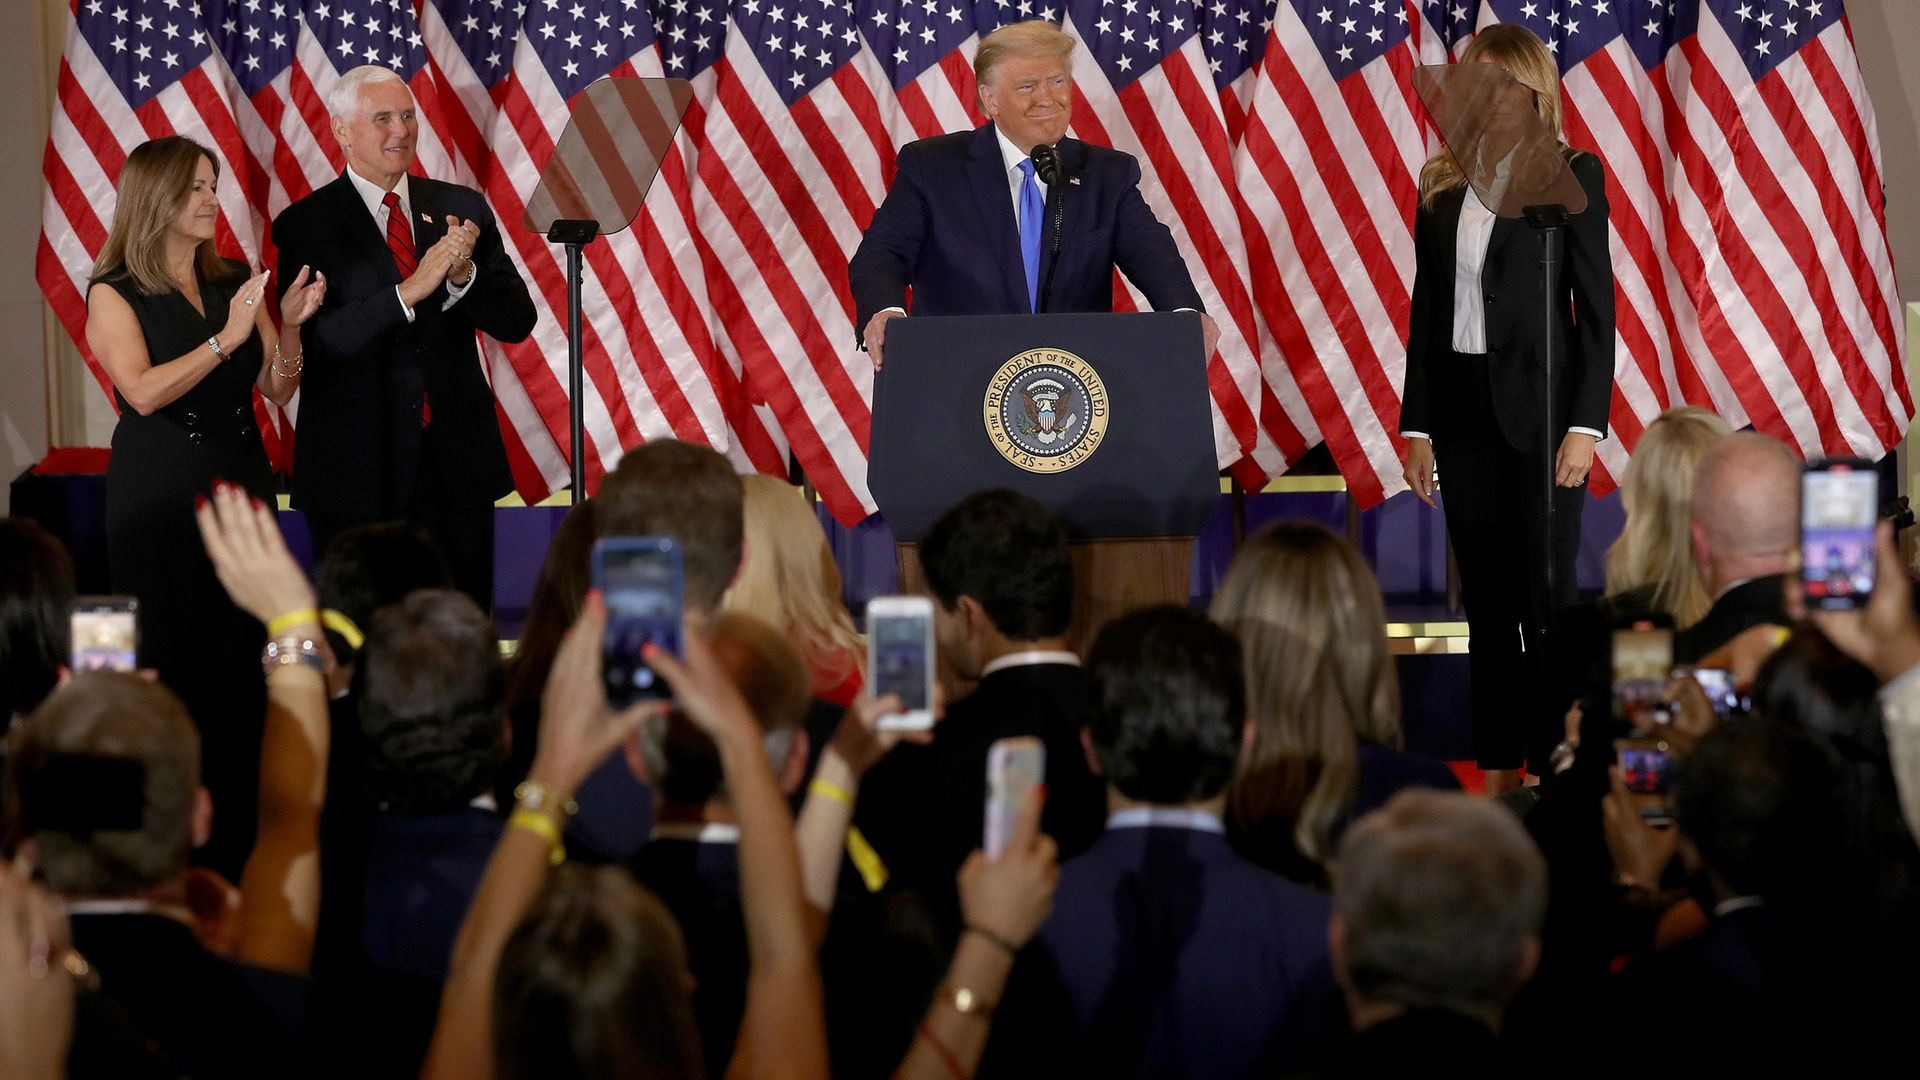 U.S. President Donald Trump speaks on election night in the East Room of the White House as First Lady Melania Trump, Vice President Mike Pence and Karen Pence look on - Credit: Getty Images